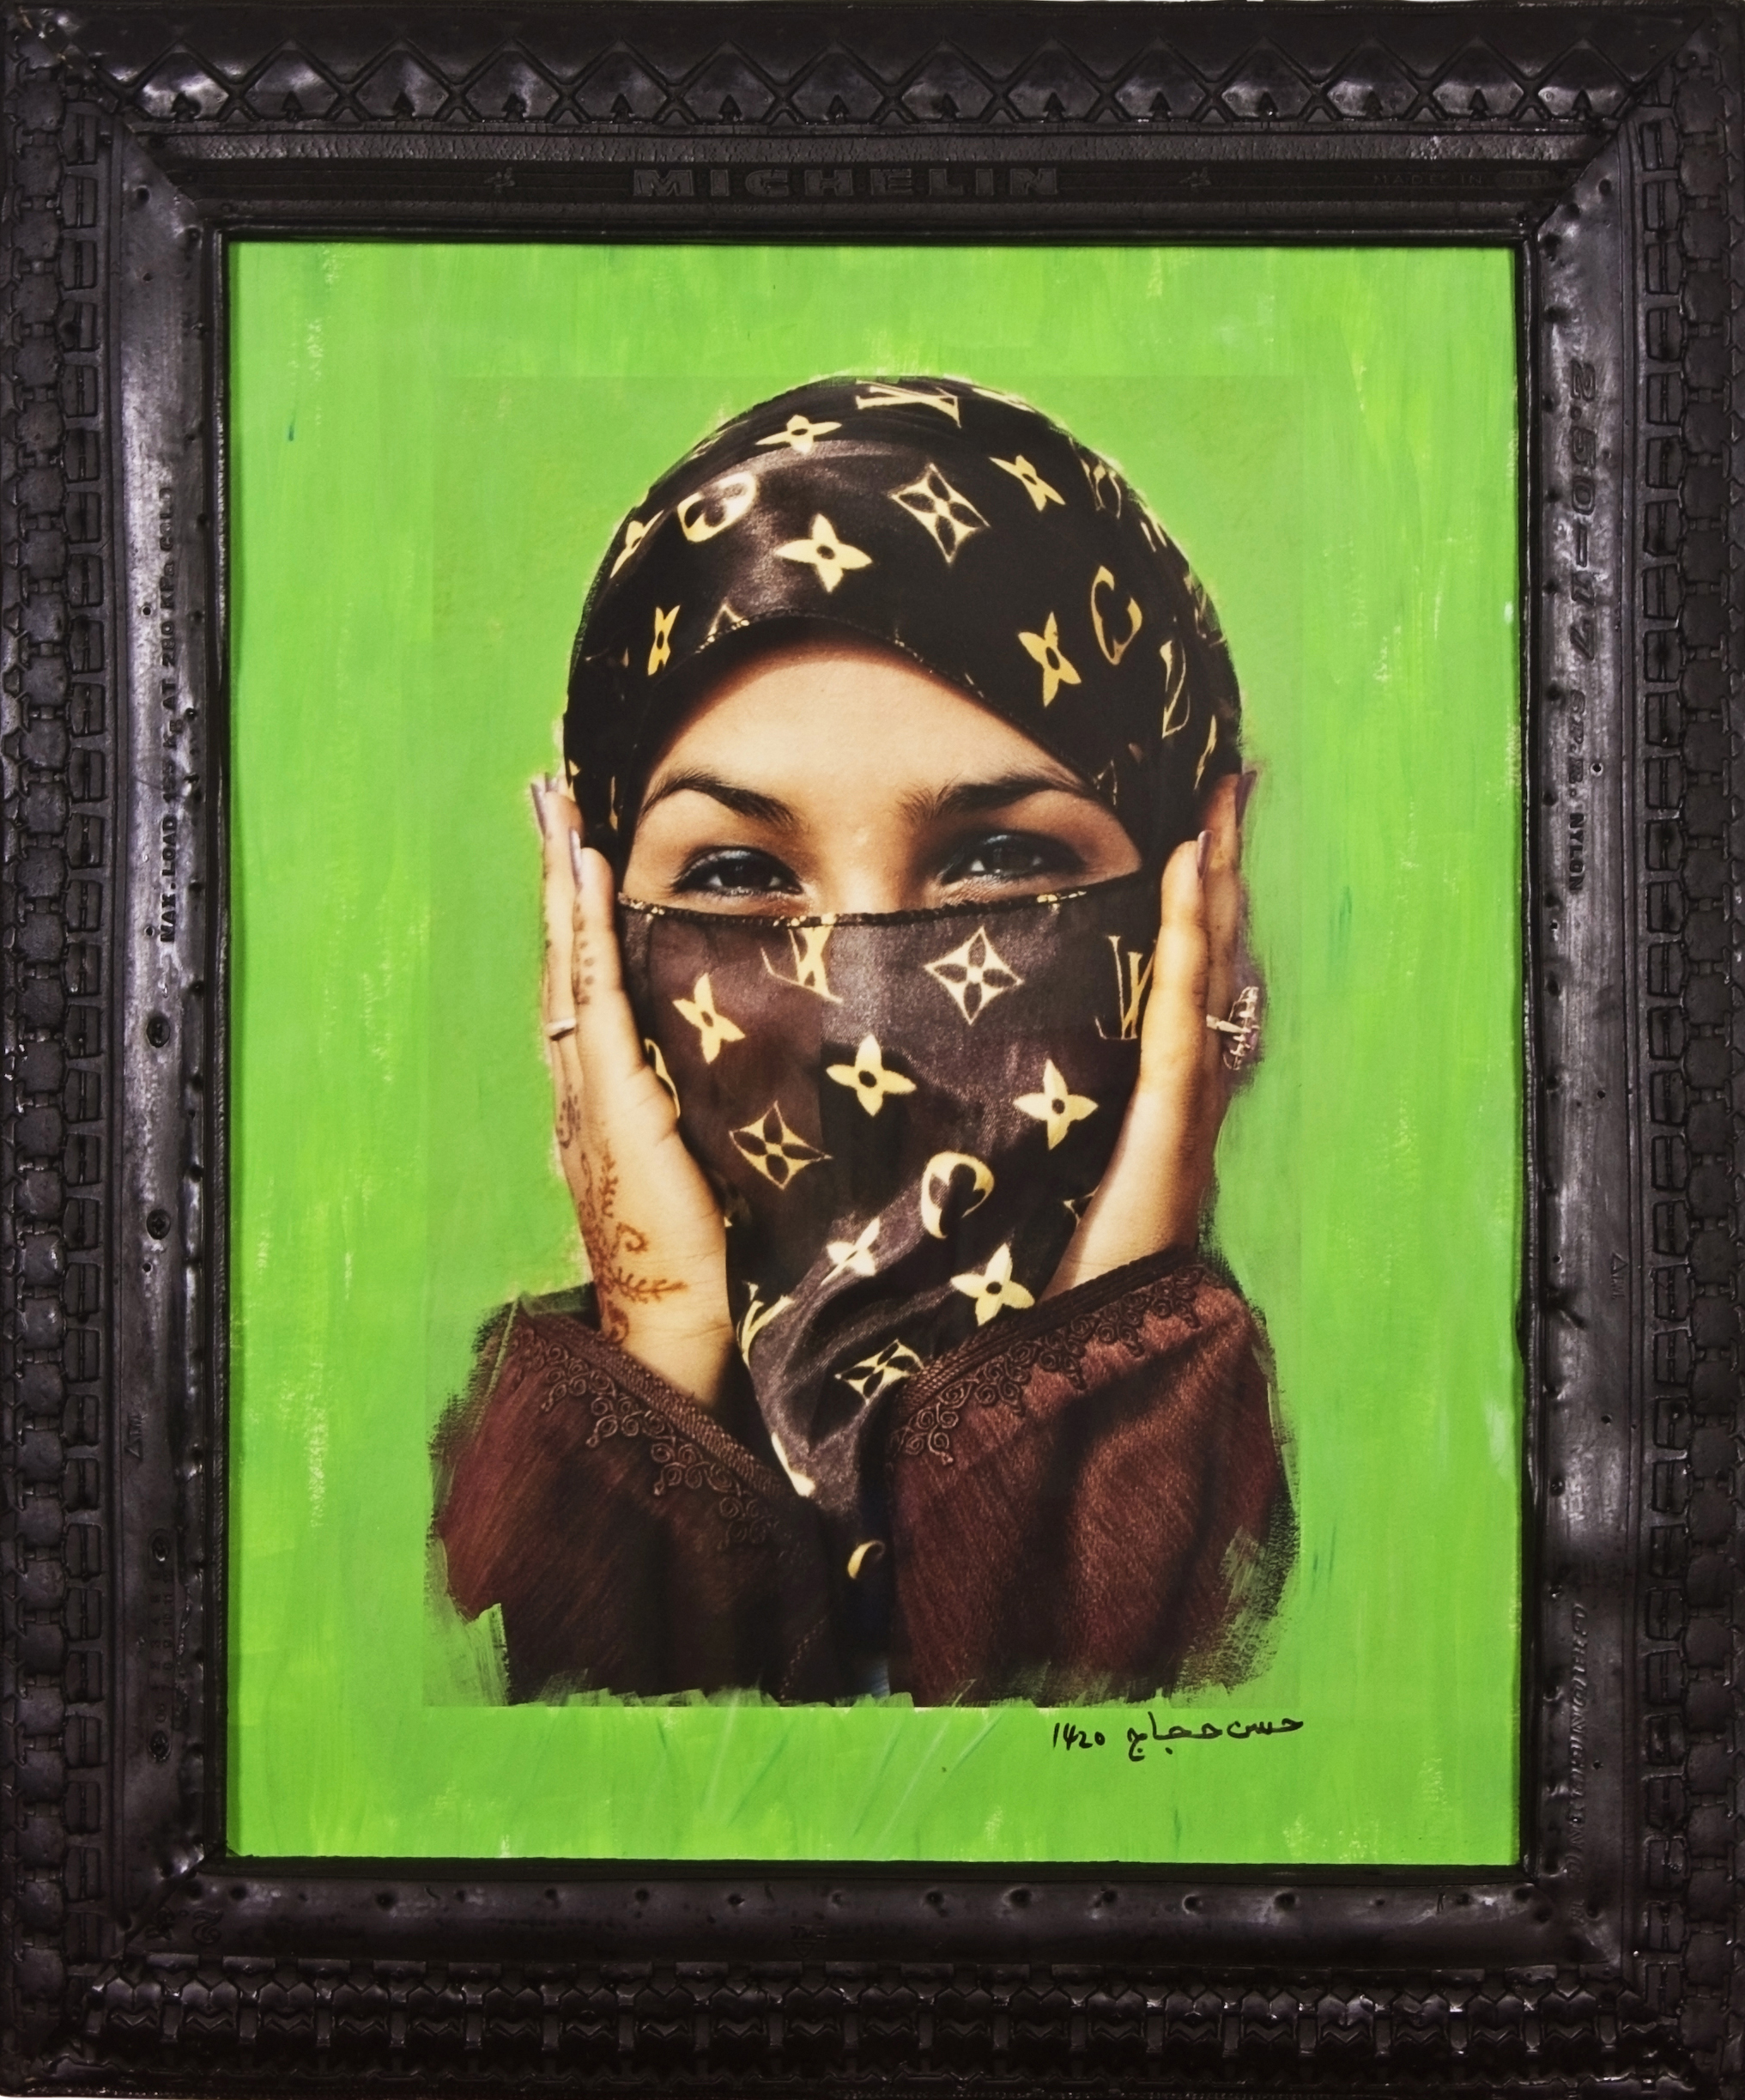 Hassan Hajjaj, Saida in Green, 2000 - Art Fund Collection of Middle Eastern Photography at the V&A and the British Museum